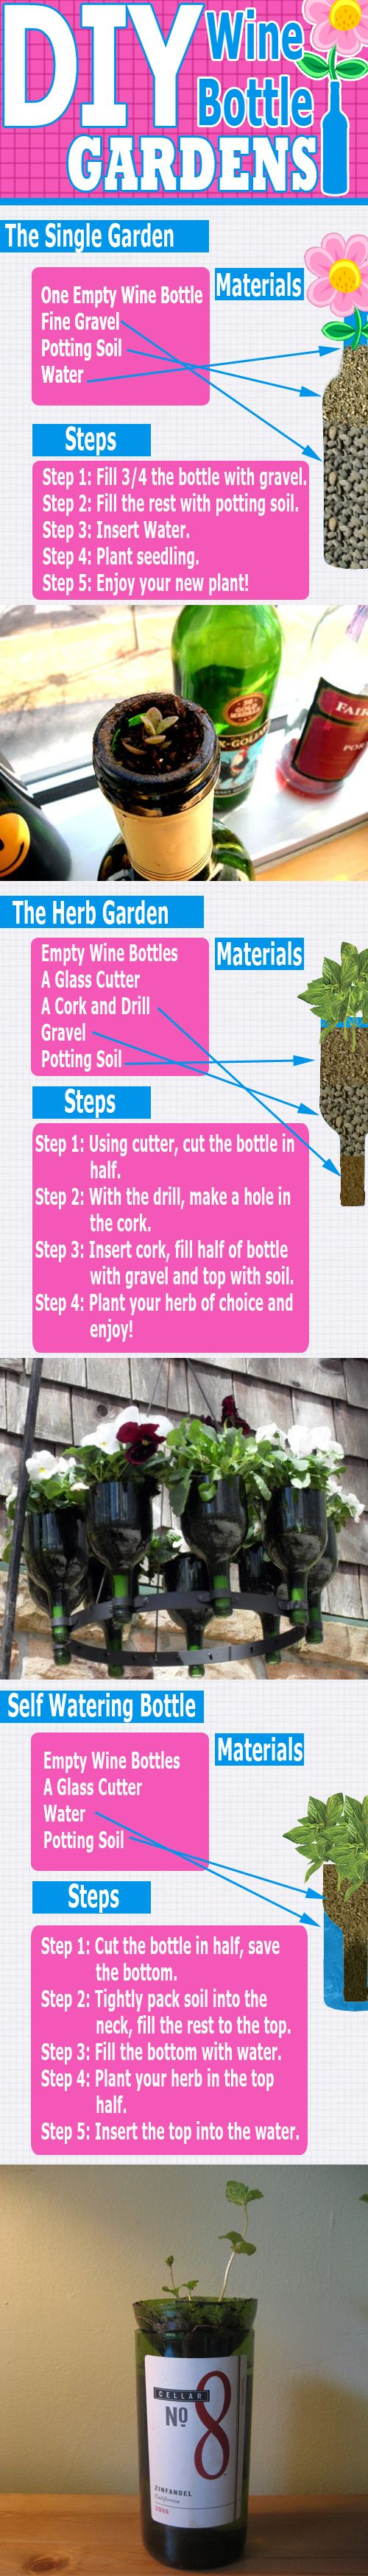 DIY Wine bottle garden! I could totally see me doing this... awesome